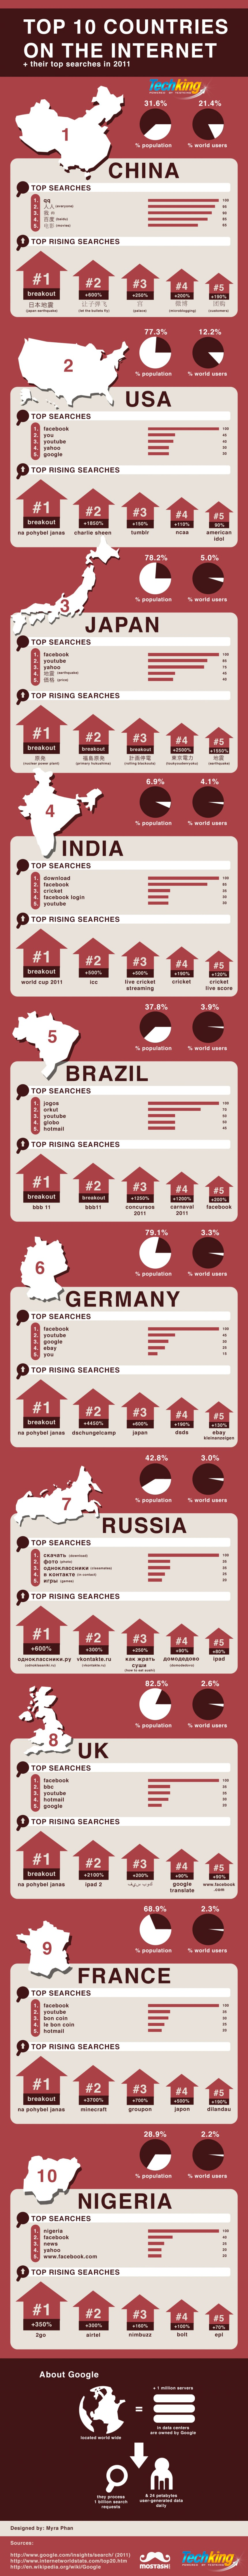 Infographic: The Wonderful World of Search